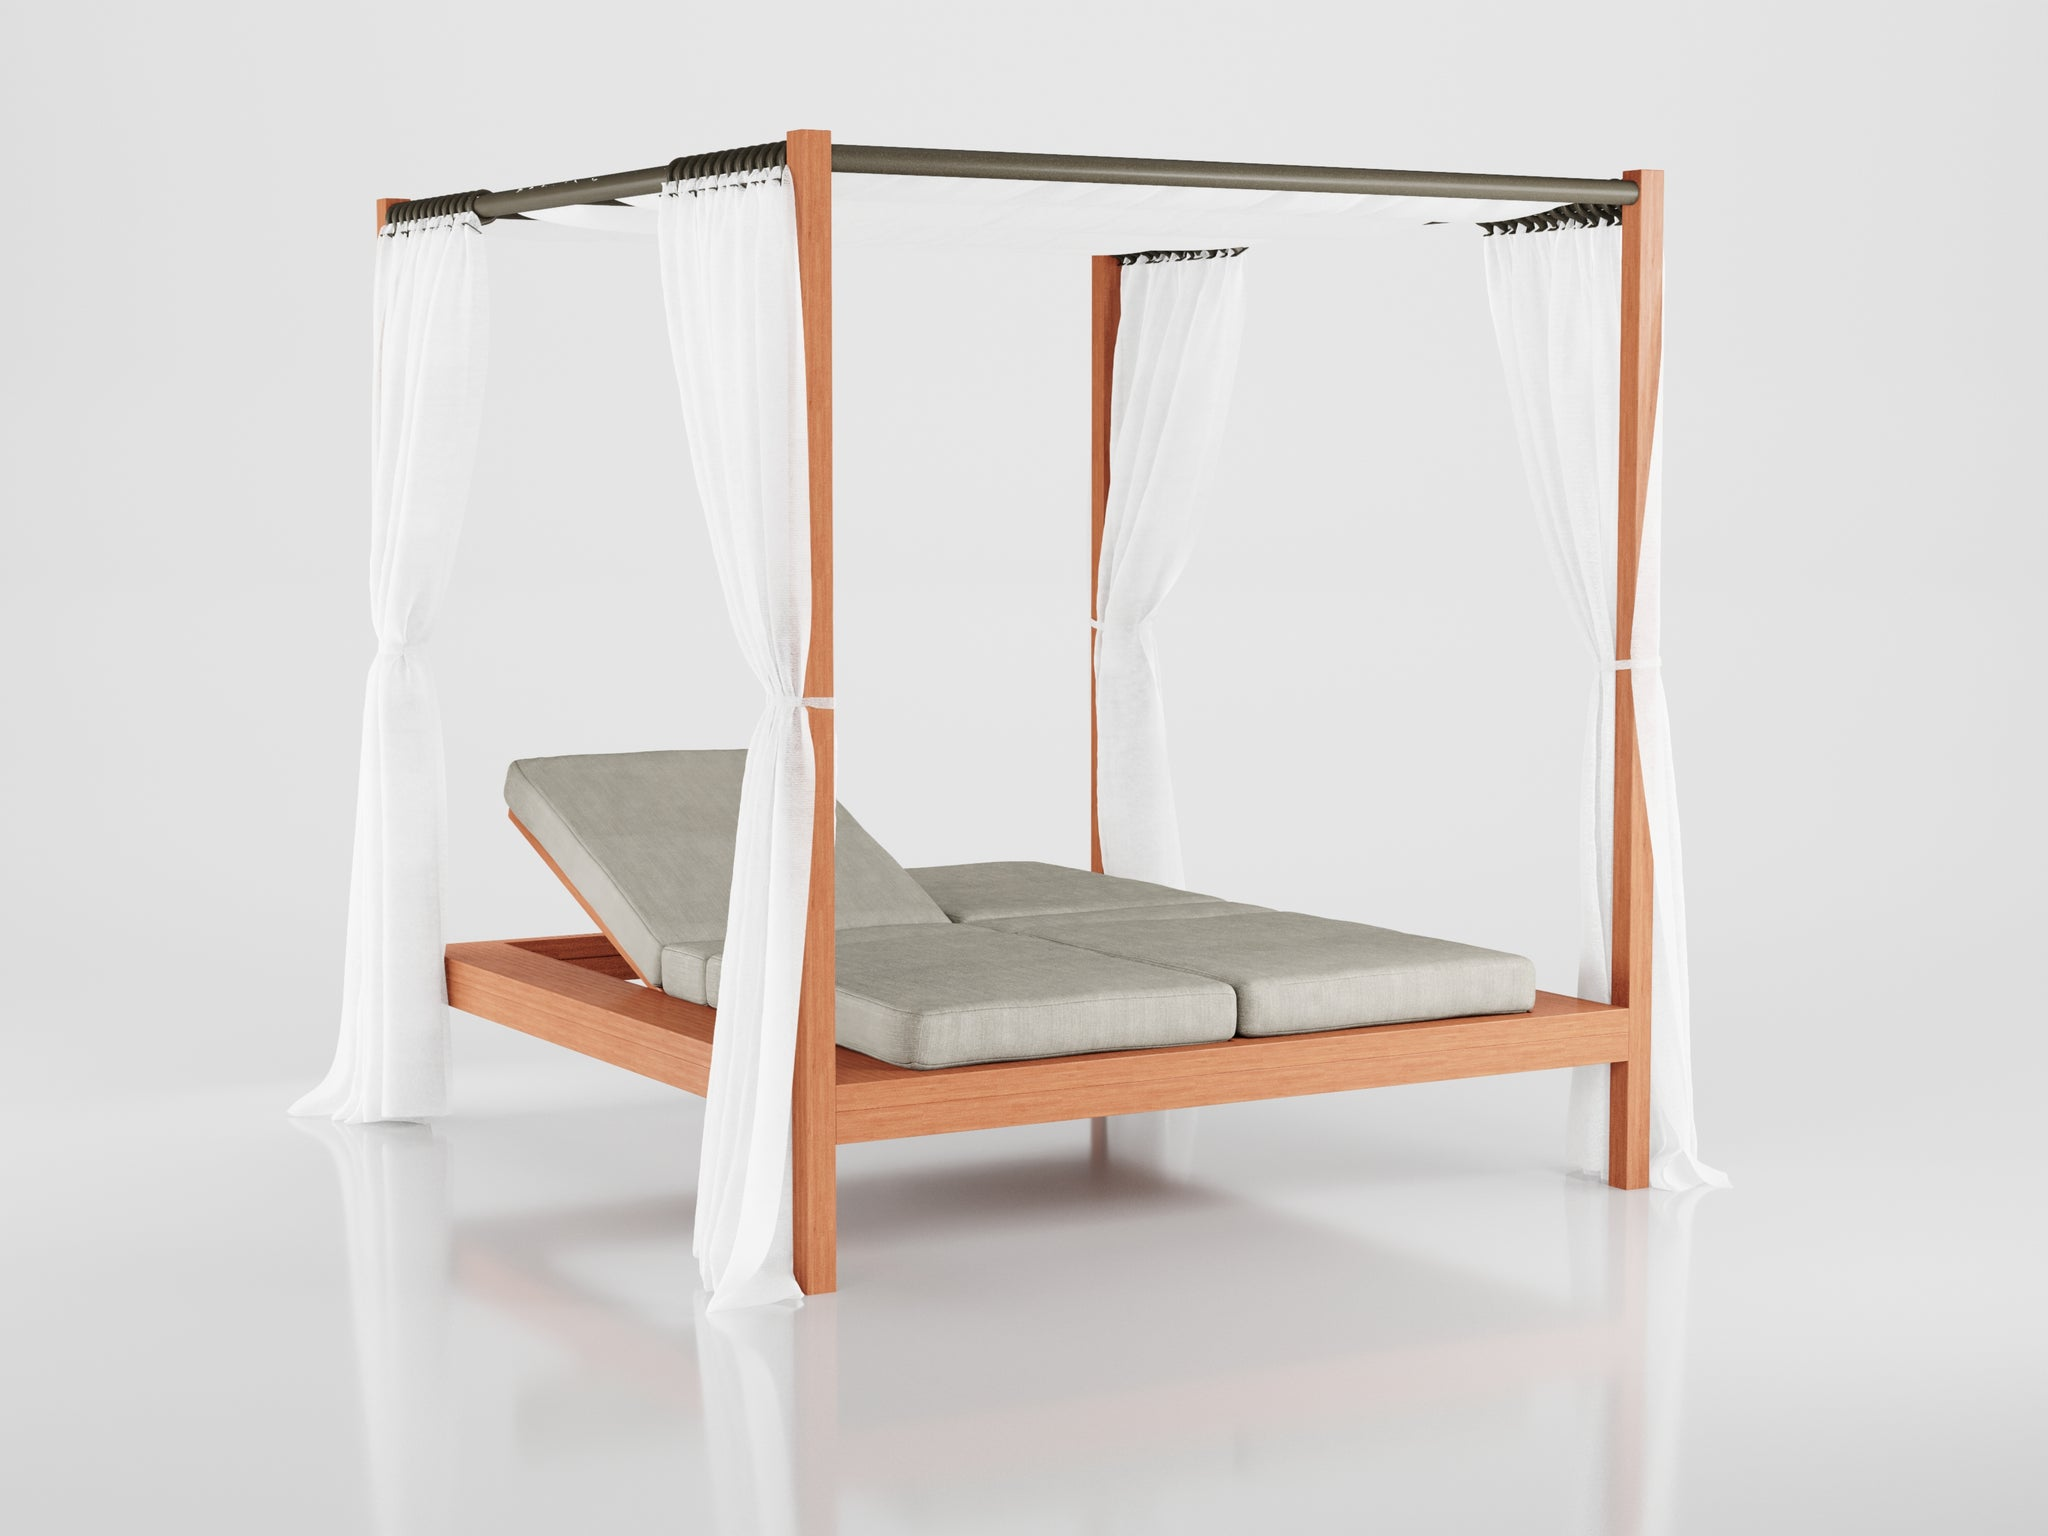 2299 - Oslo Daybed